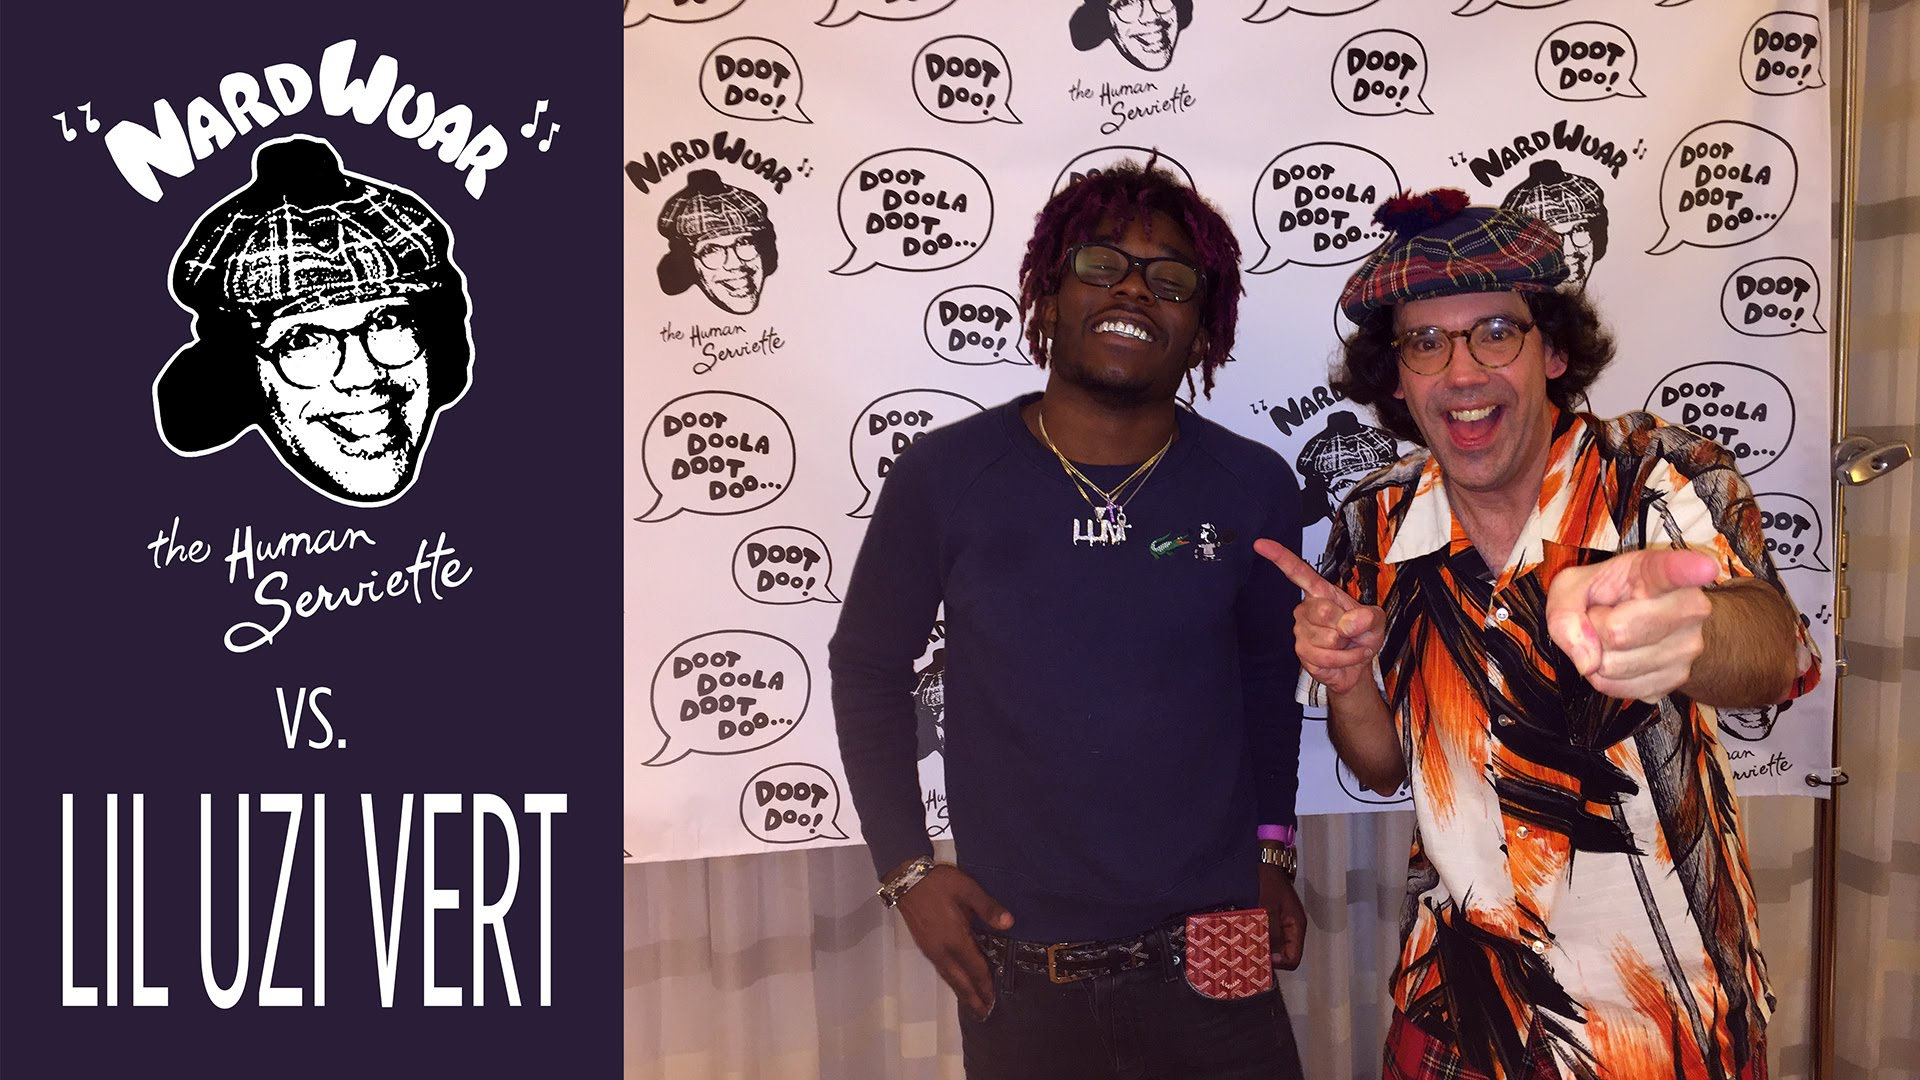 Video: Lil Uzi Vert vs. Nardwuar